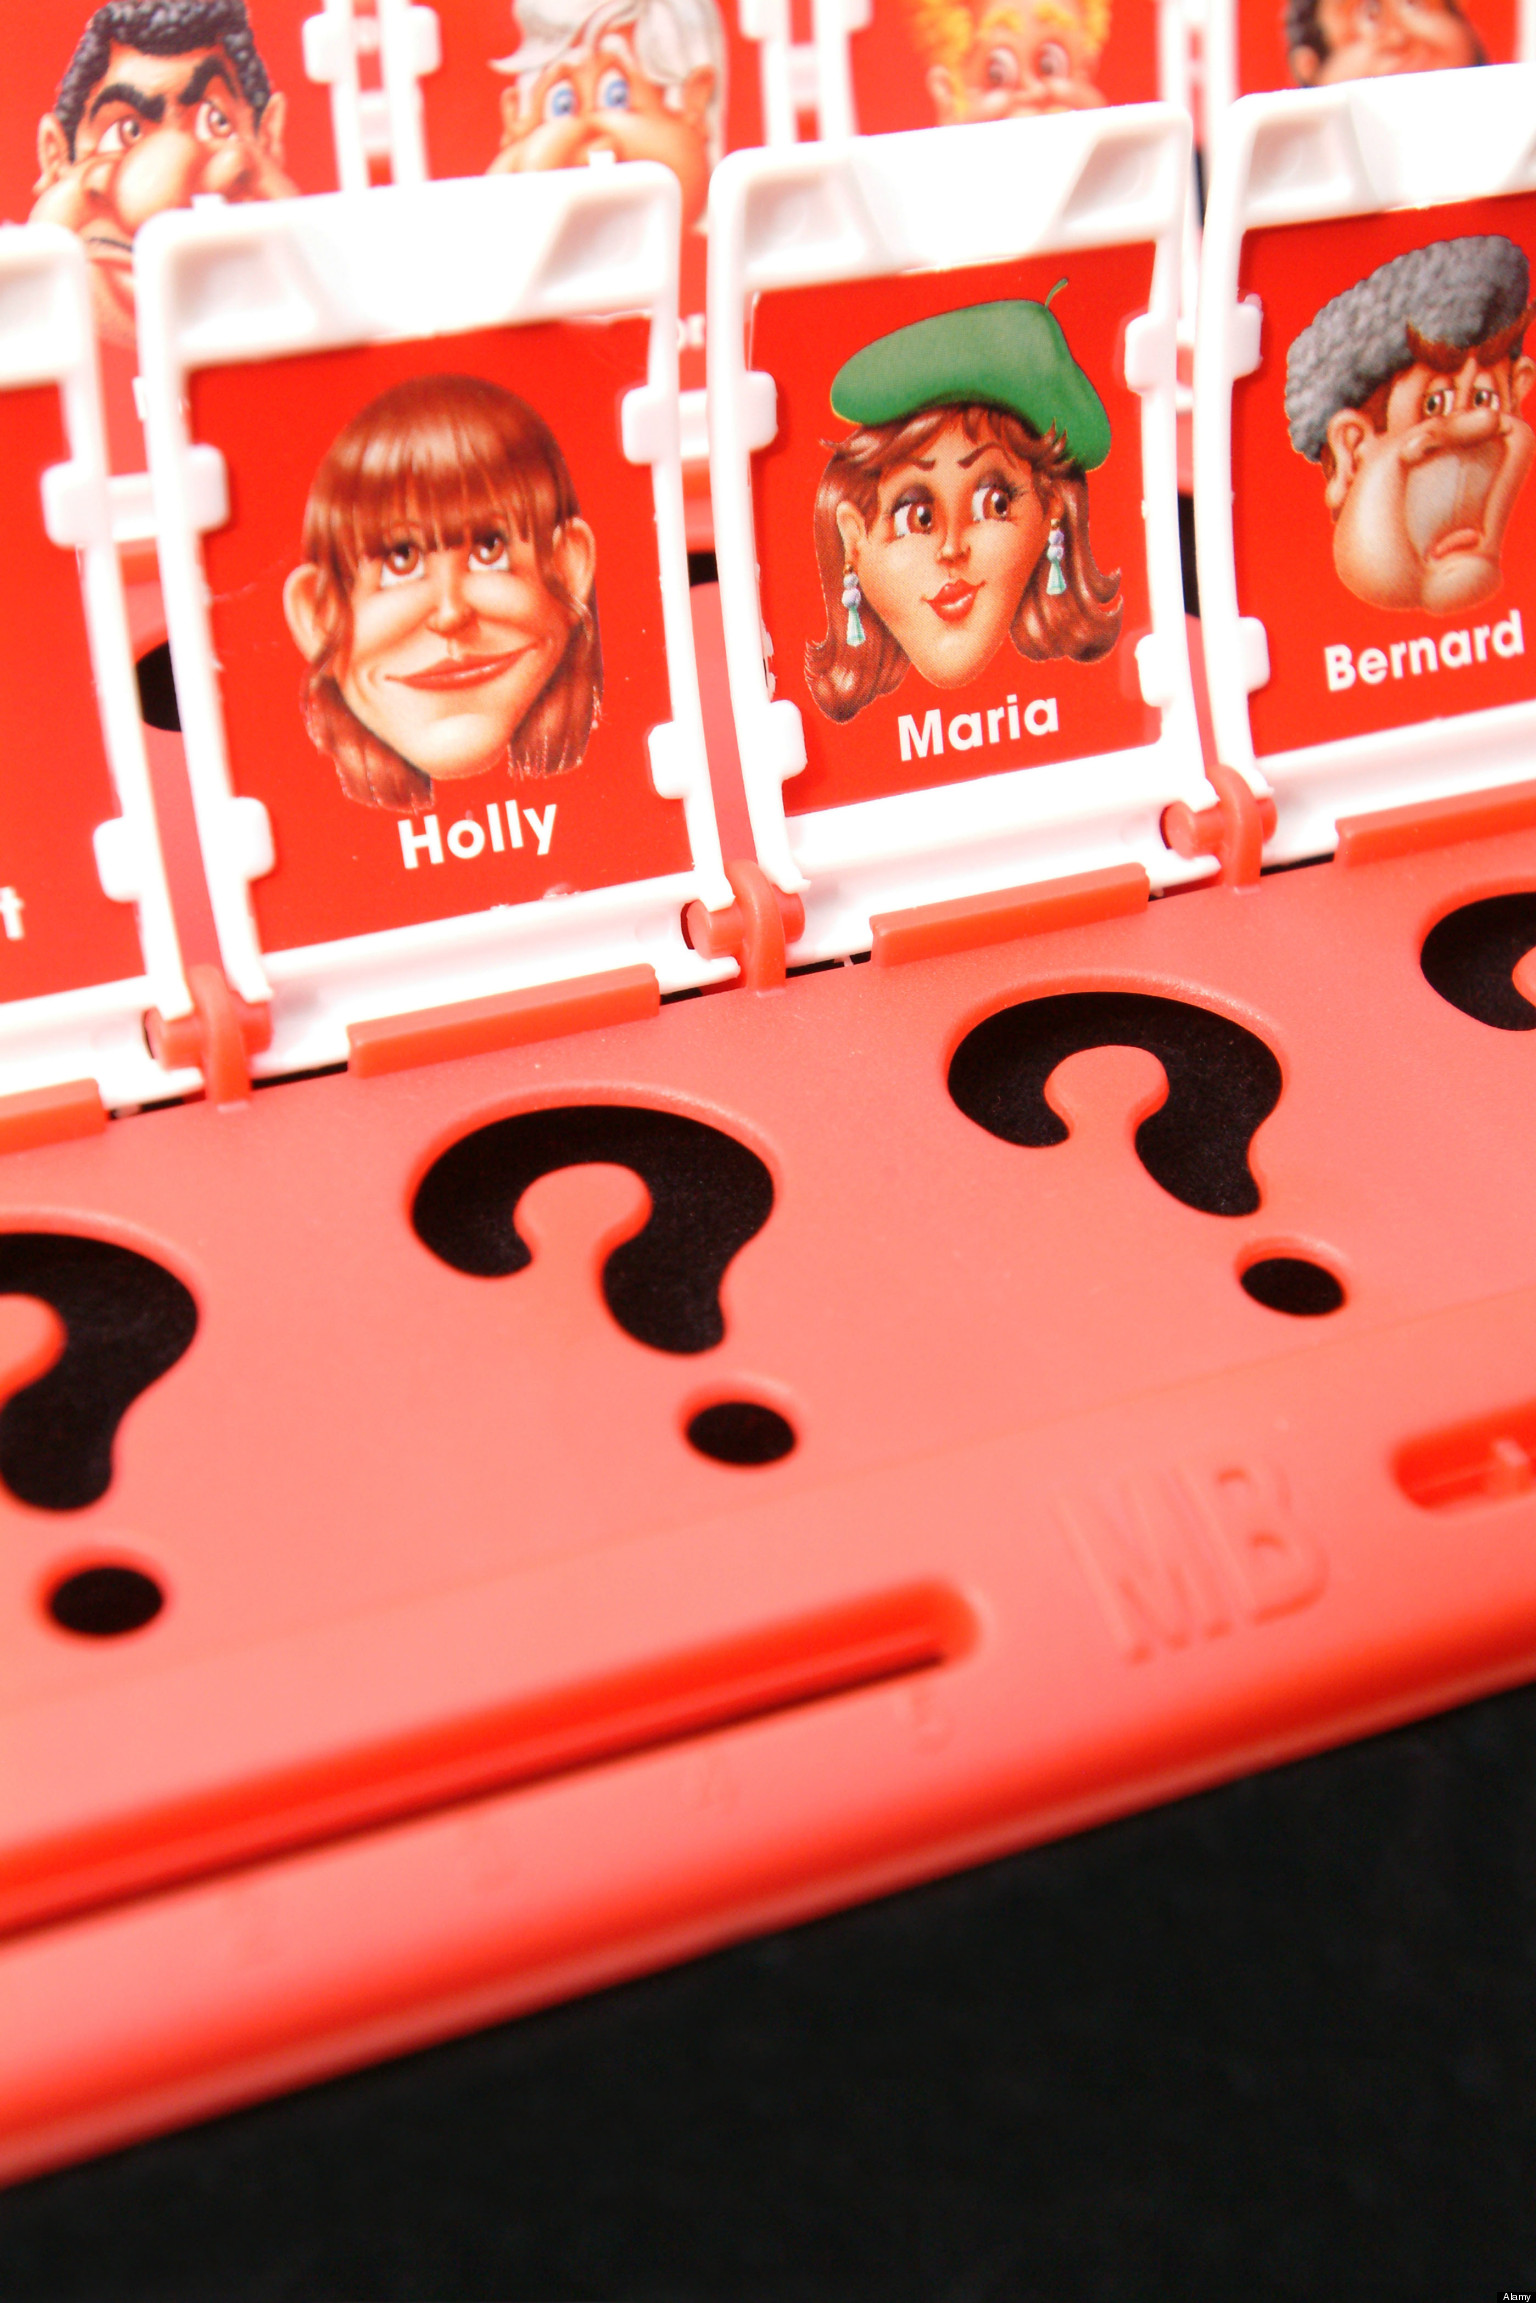 Naked guess who game uk